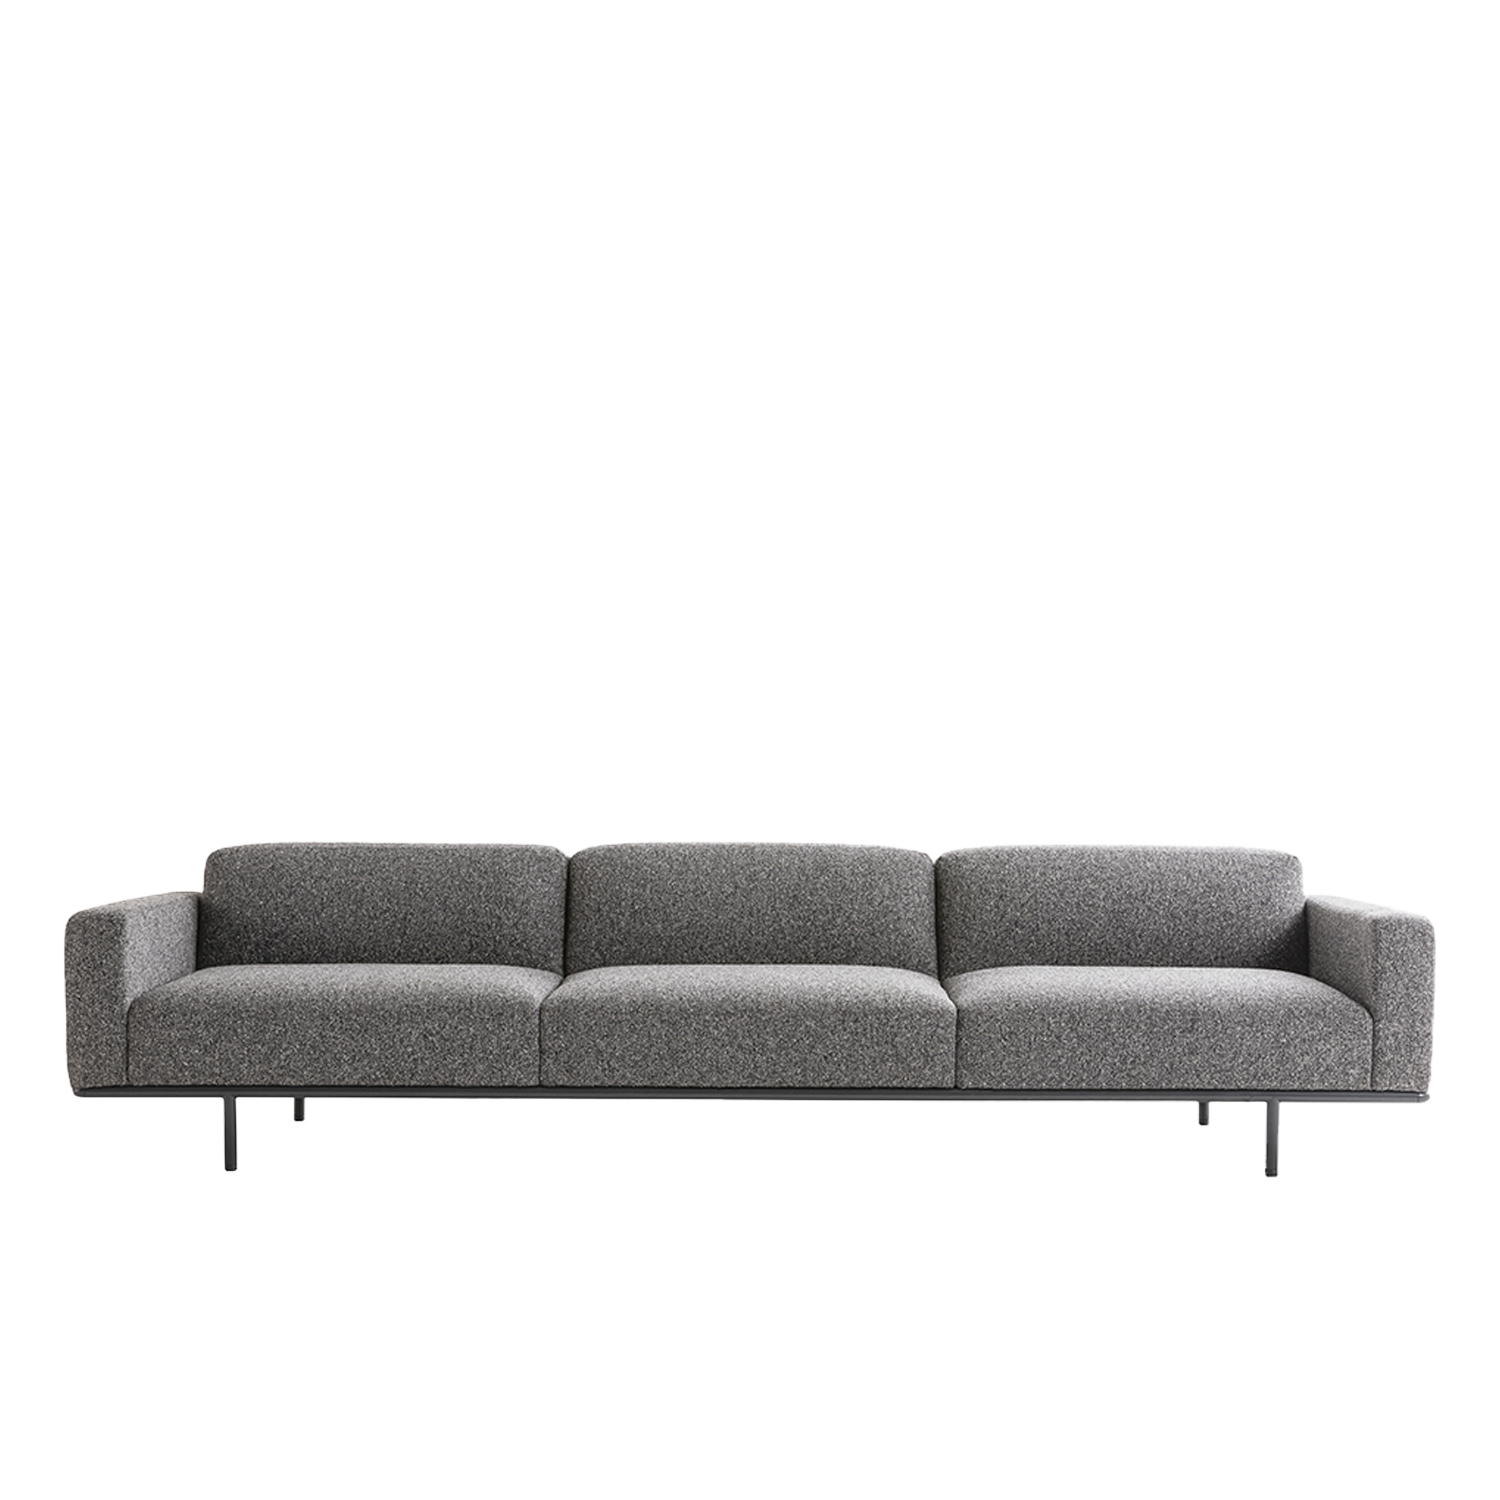 Cap Ferrat Large Three-Seater Sofa with Armrests - Cap Ferrat sofa by Carlo Colombo is the emblem of a new collection marked by a rigorous and virtually atemporal design, capable of maintaining an airy appearance, even in large-scale dimensions.